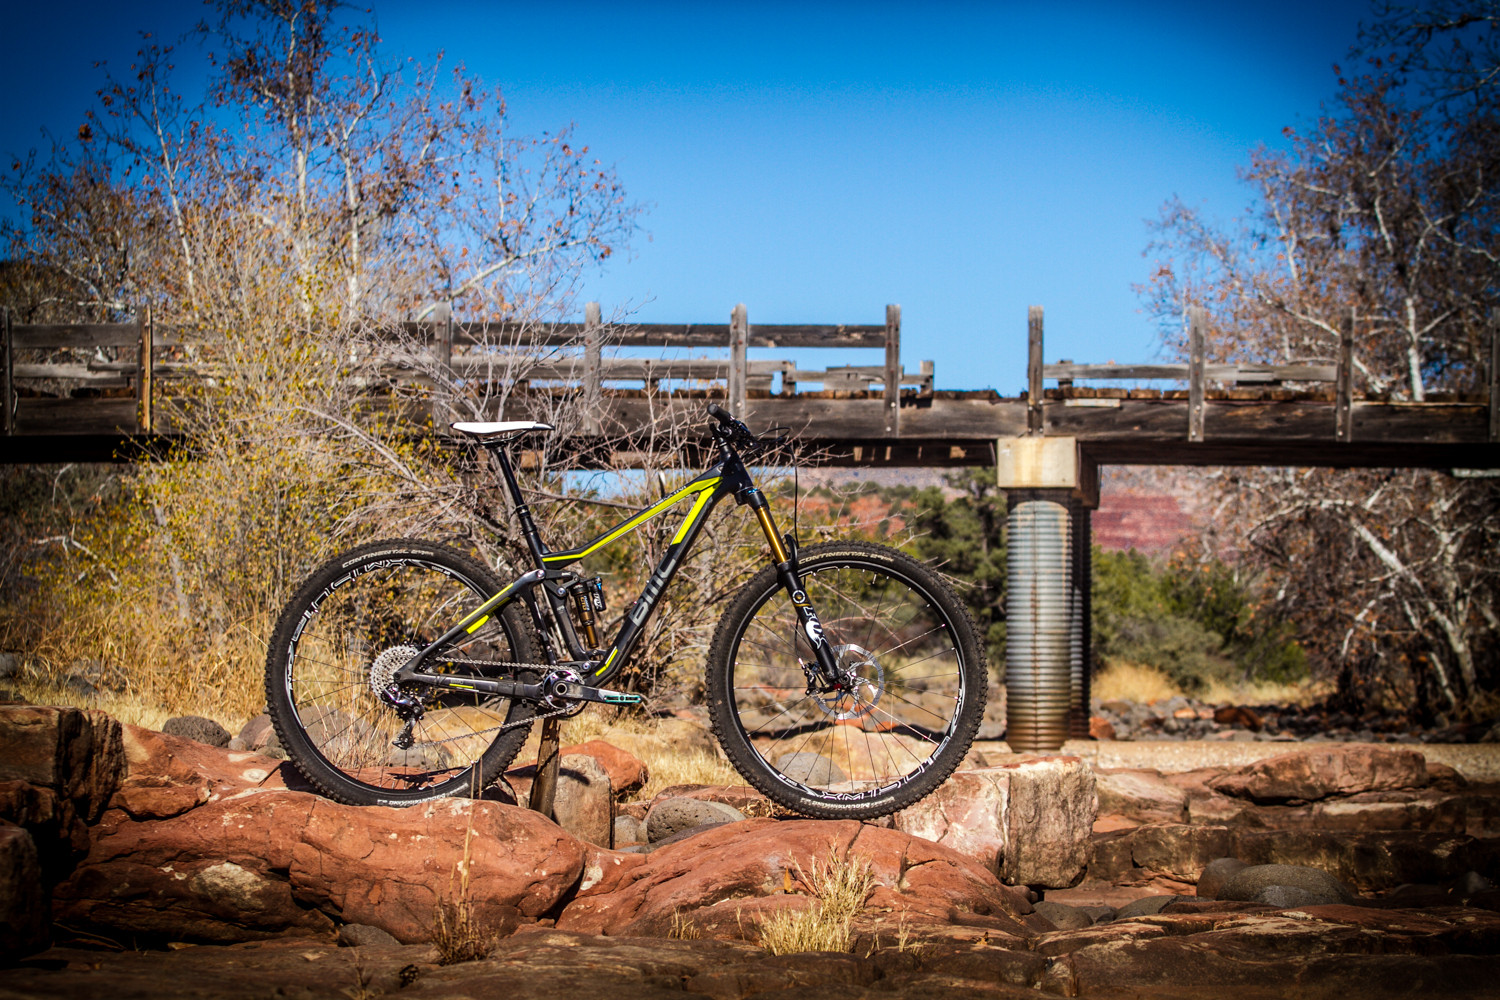 2014 BMC Trailfox TF01 29 - 2014 Test Sessions: BMC Trailfox TF01 29 - Mountain Biking Pictures - Vital MTB